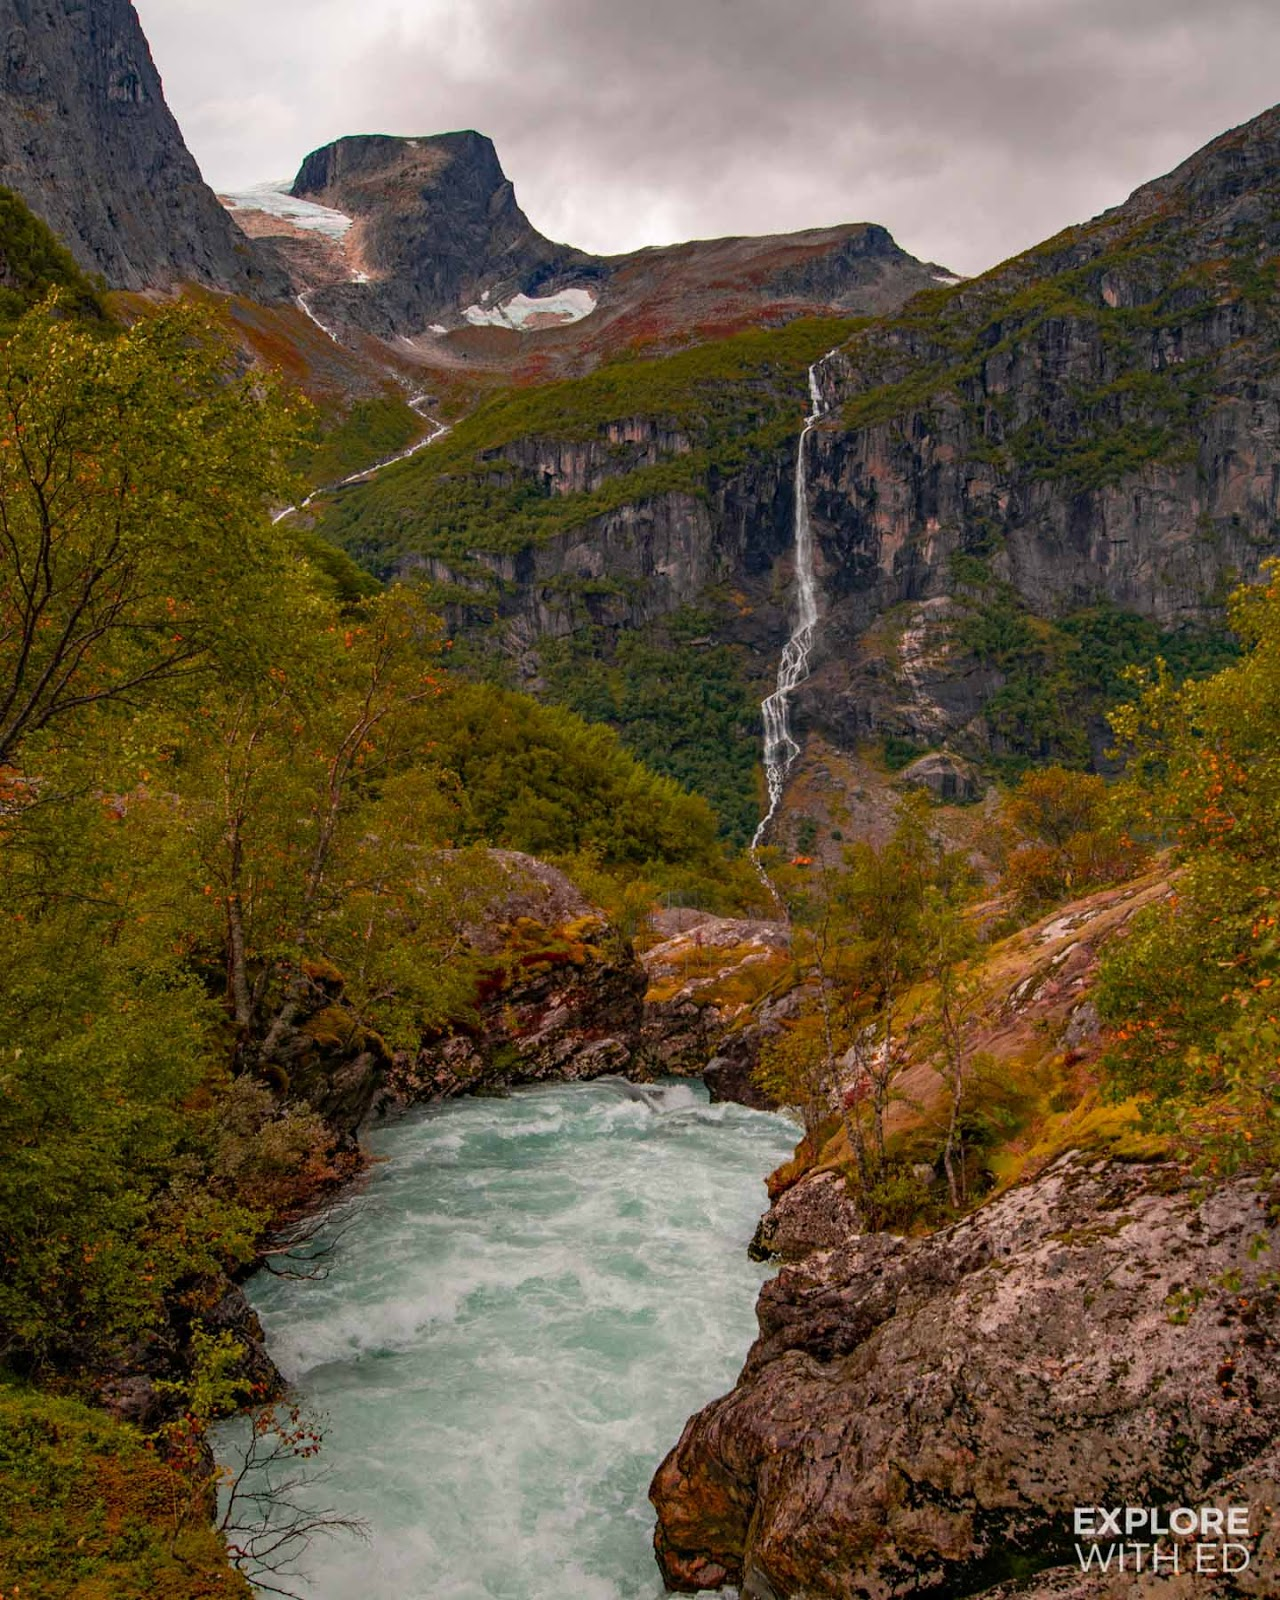 Spectacular views in Jostedalsbreen National Park